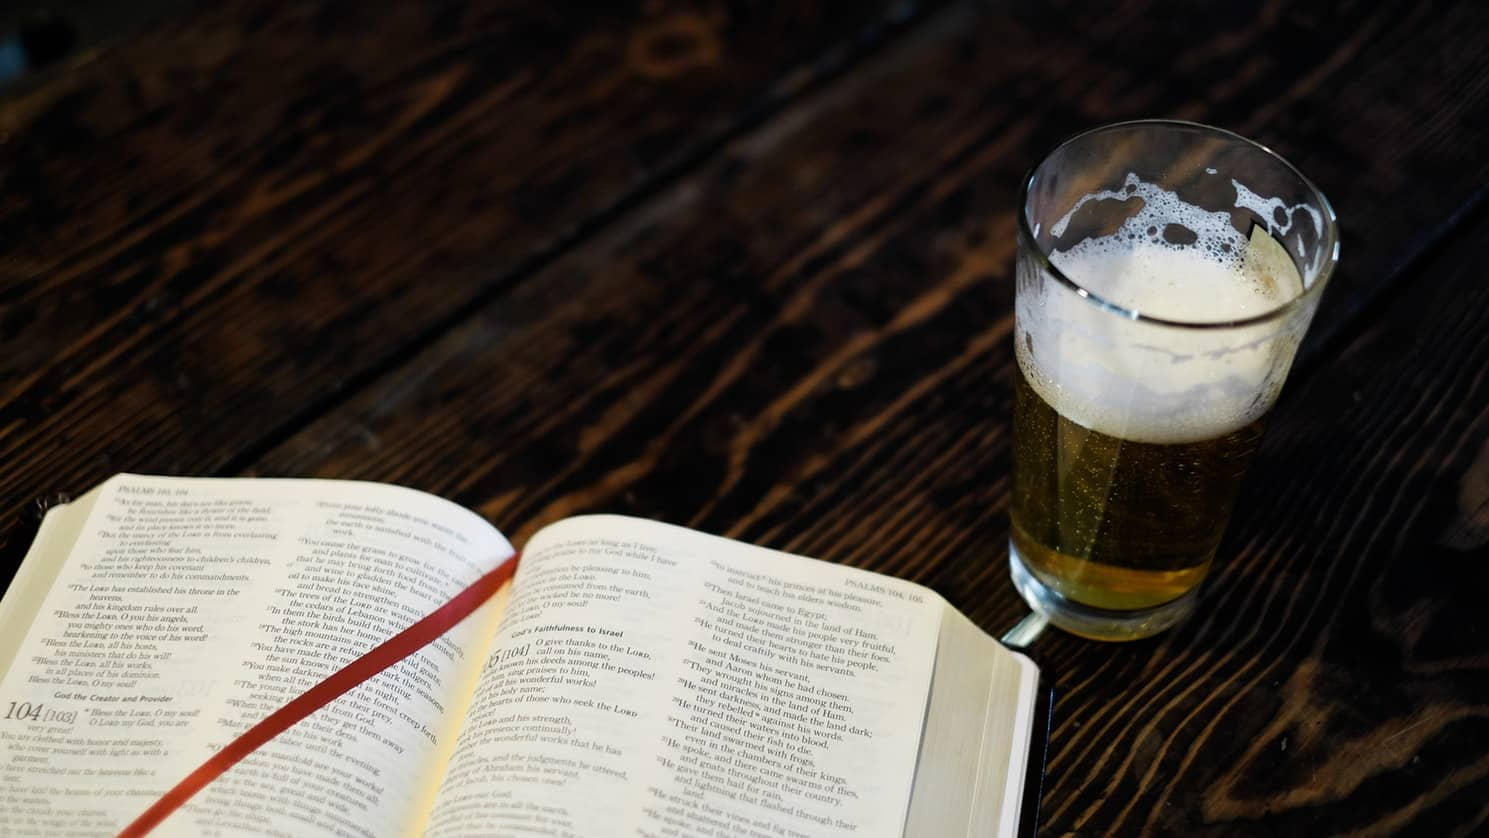 book and a glass of beer on a table